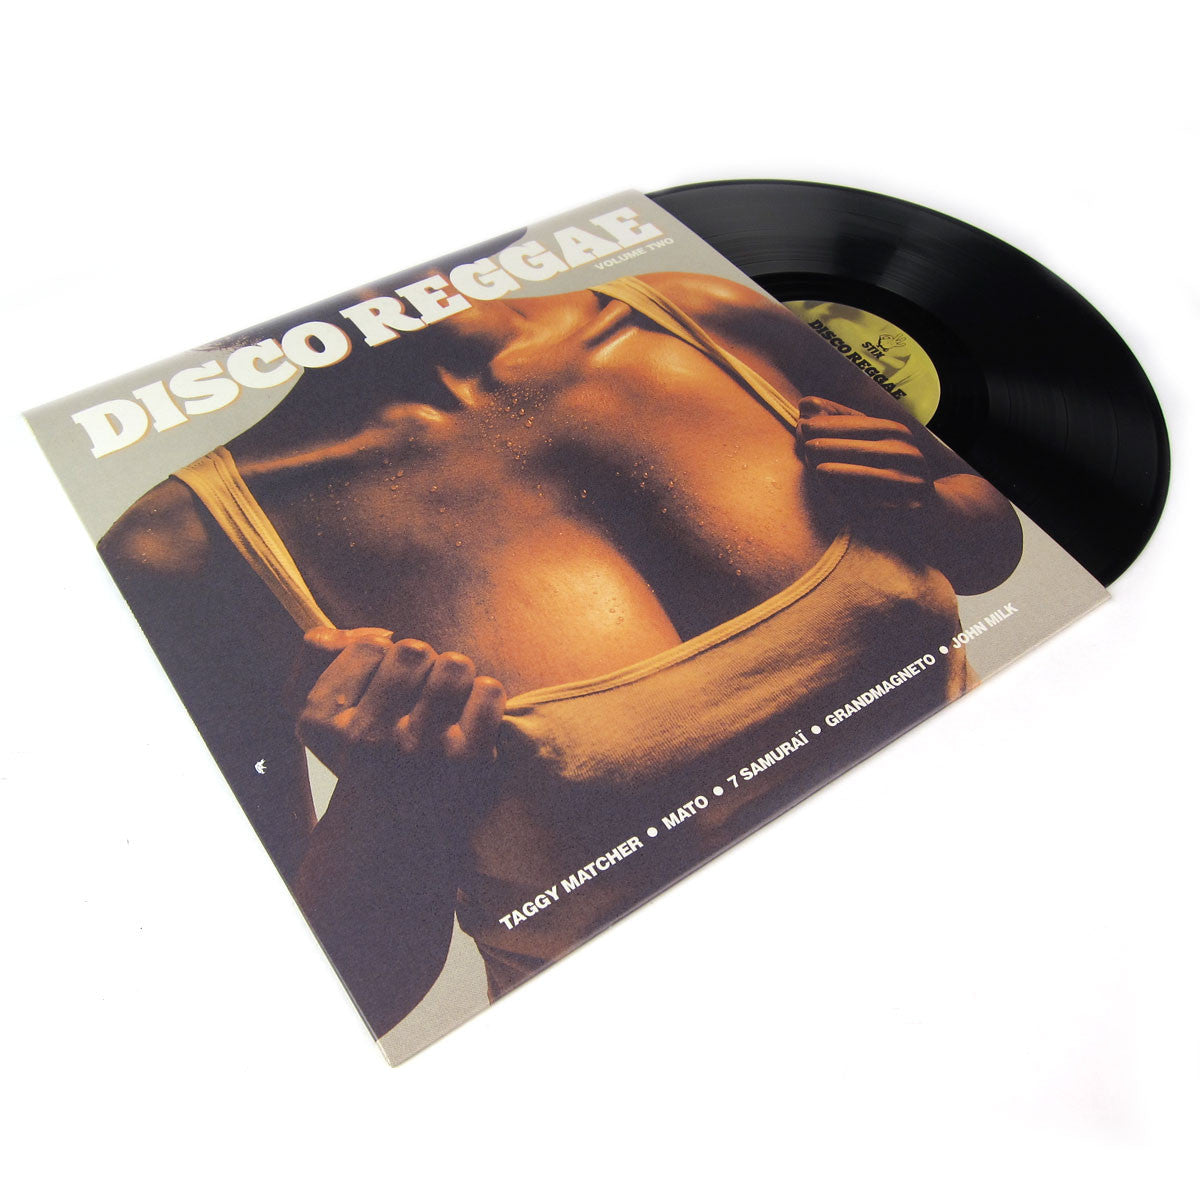 Stix Records: Disco Reggae Volume 2 Vinyl LP